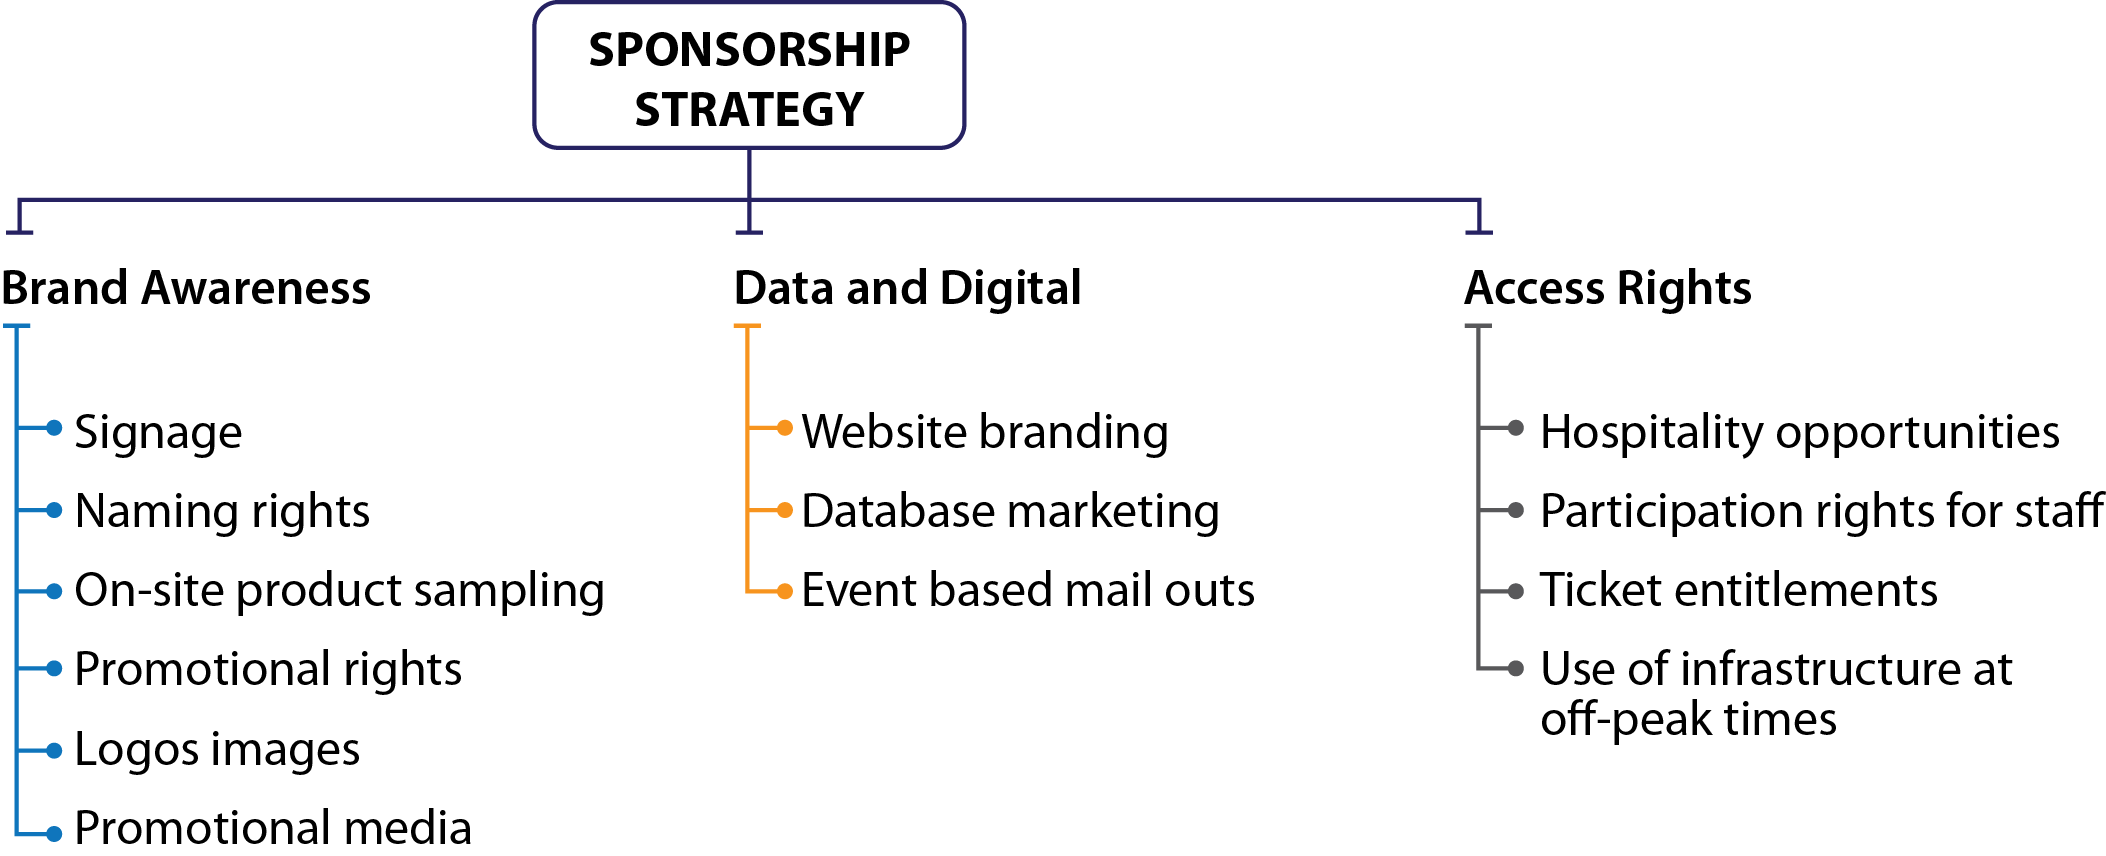 Figure 16 Sponsorship Strategy